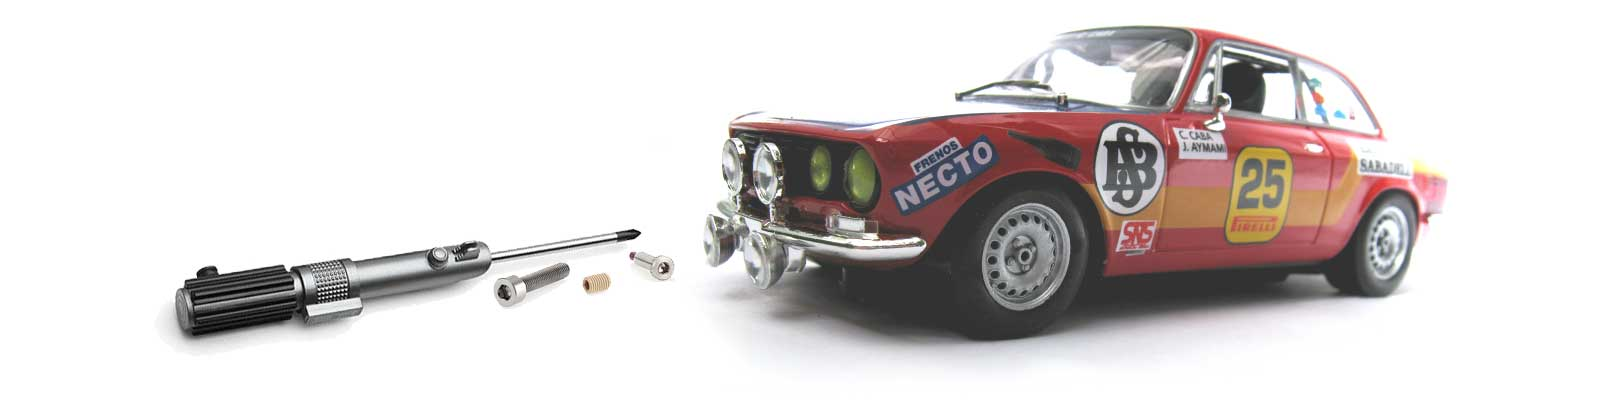 Fly Alfa GT slot car with screwdriver